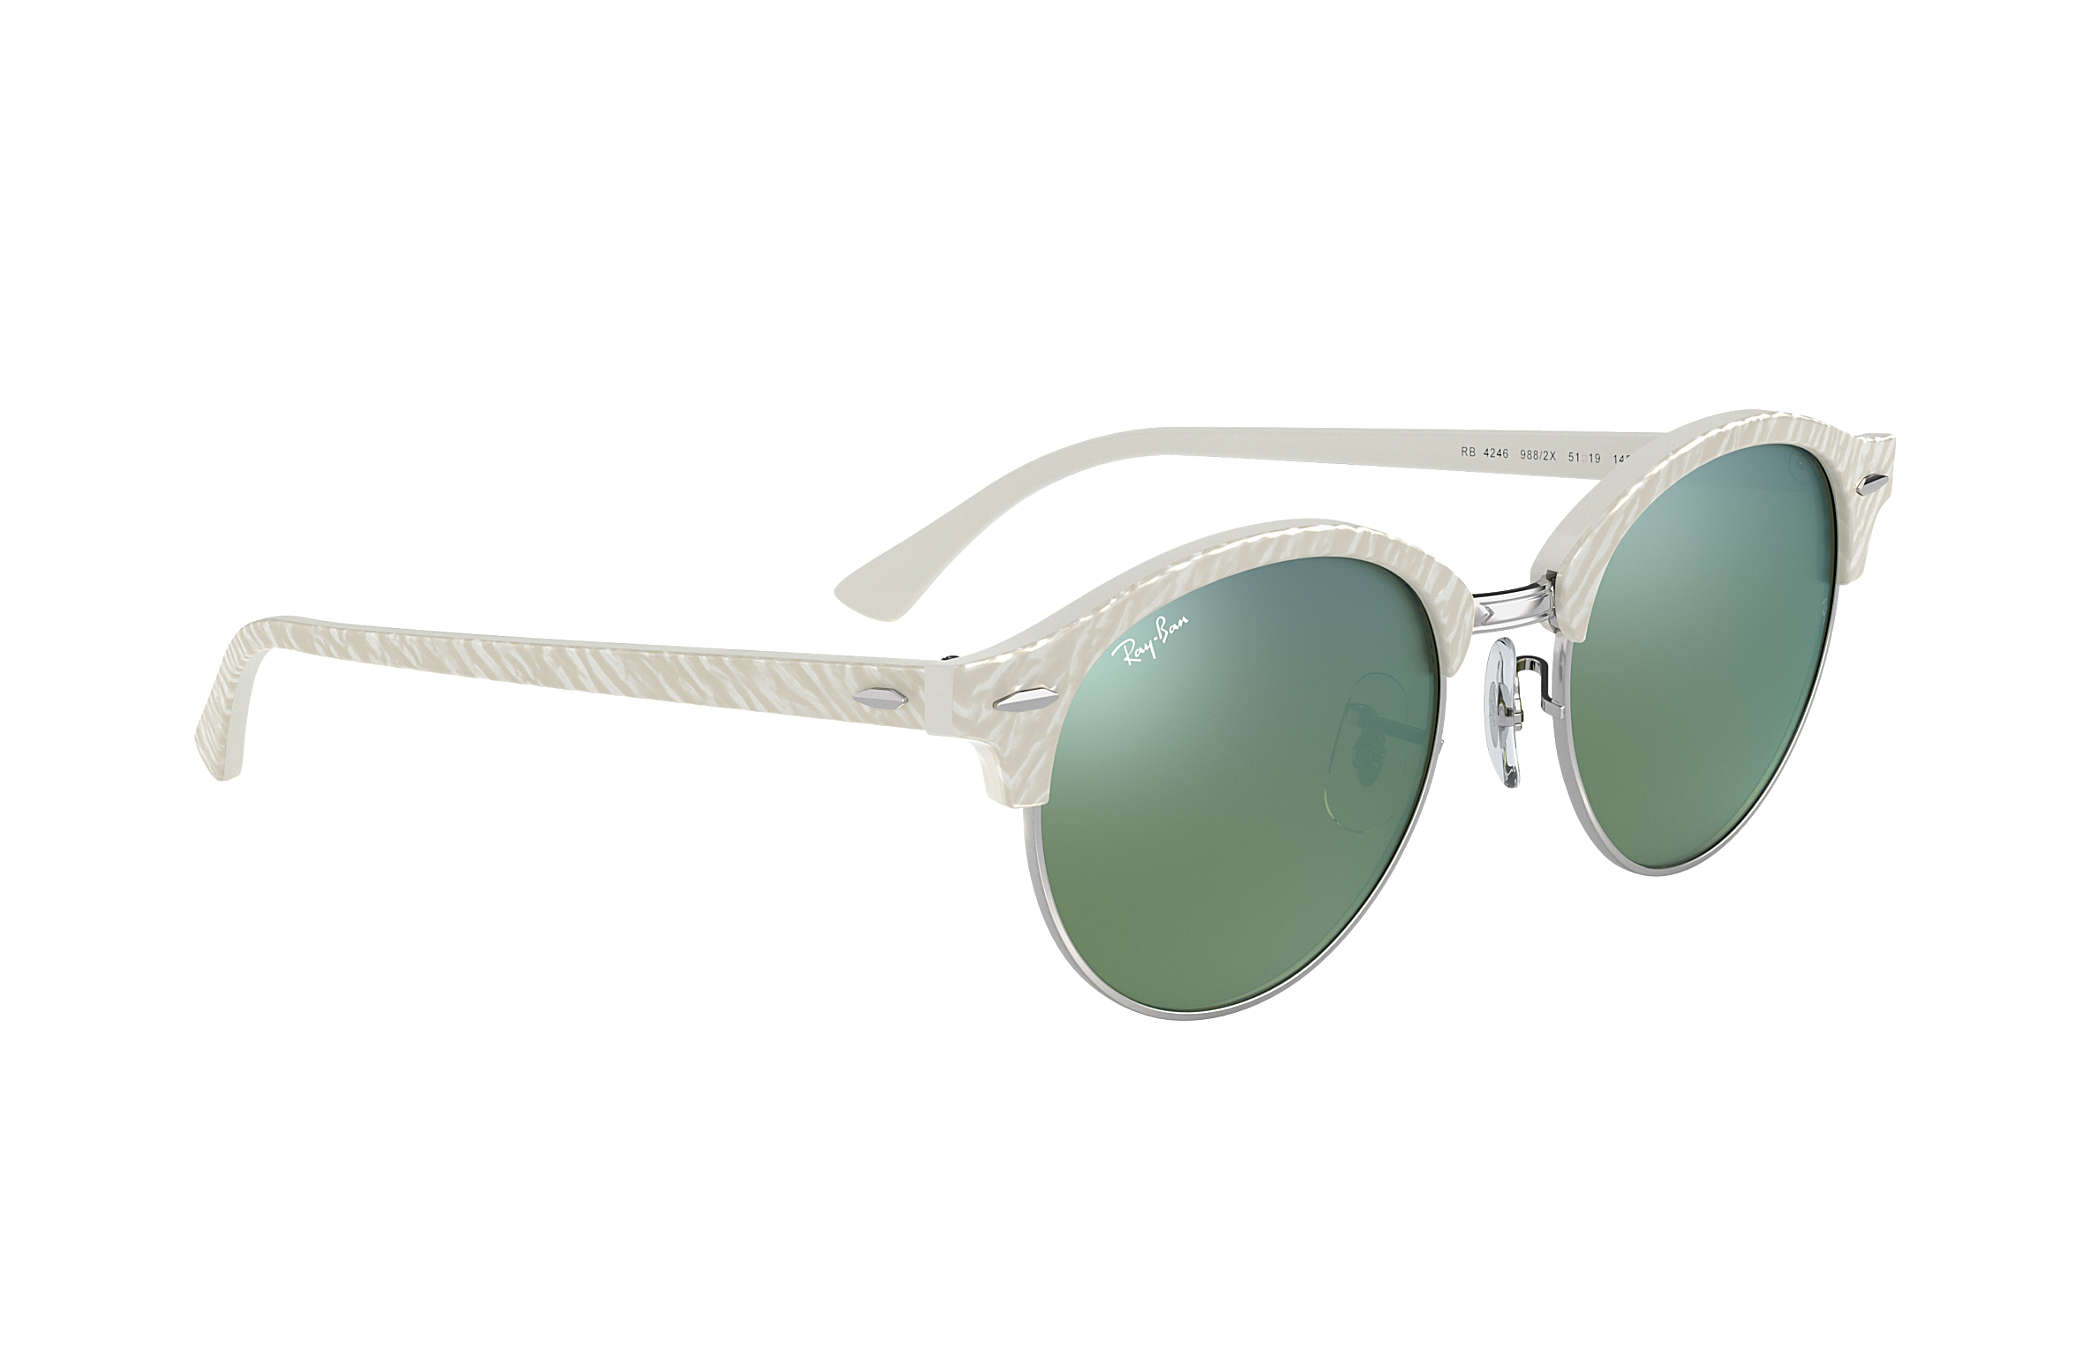 2ee23237523d3 Ray-Ban Clubround Flash Lenses RB4246 White - Acetate - Green Lenses ...